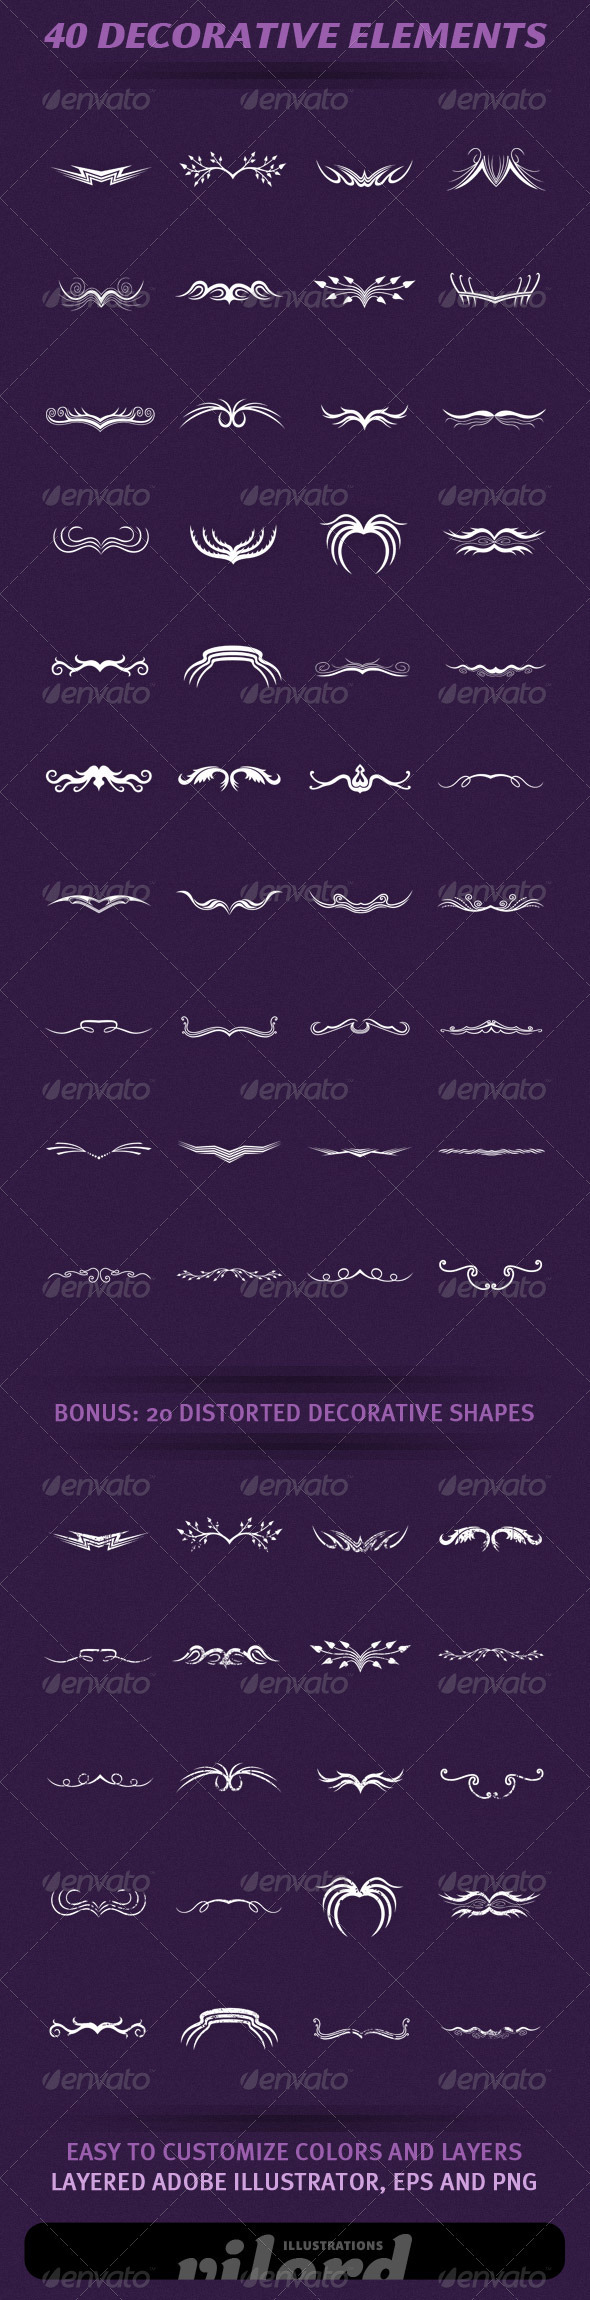 40 Decorative Elements - Decorative Vectors